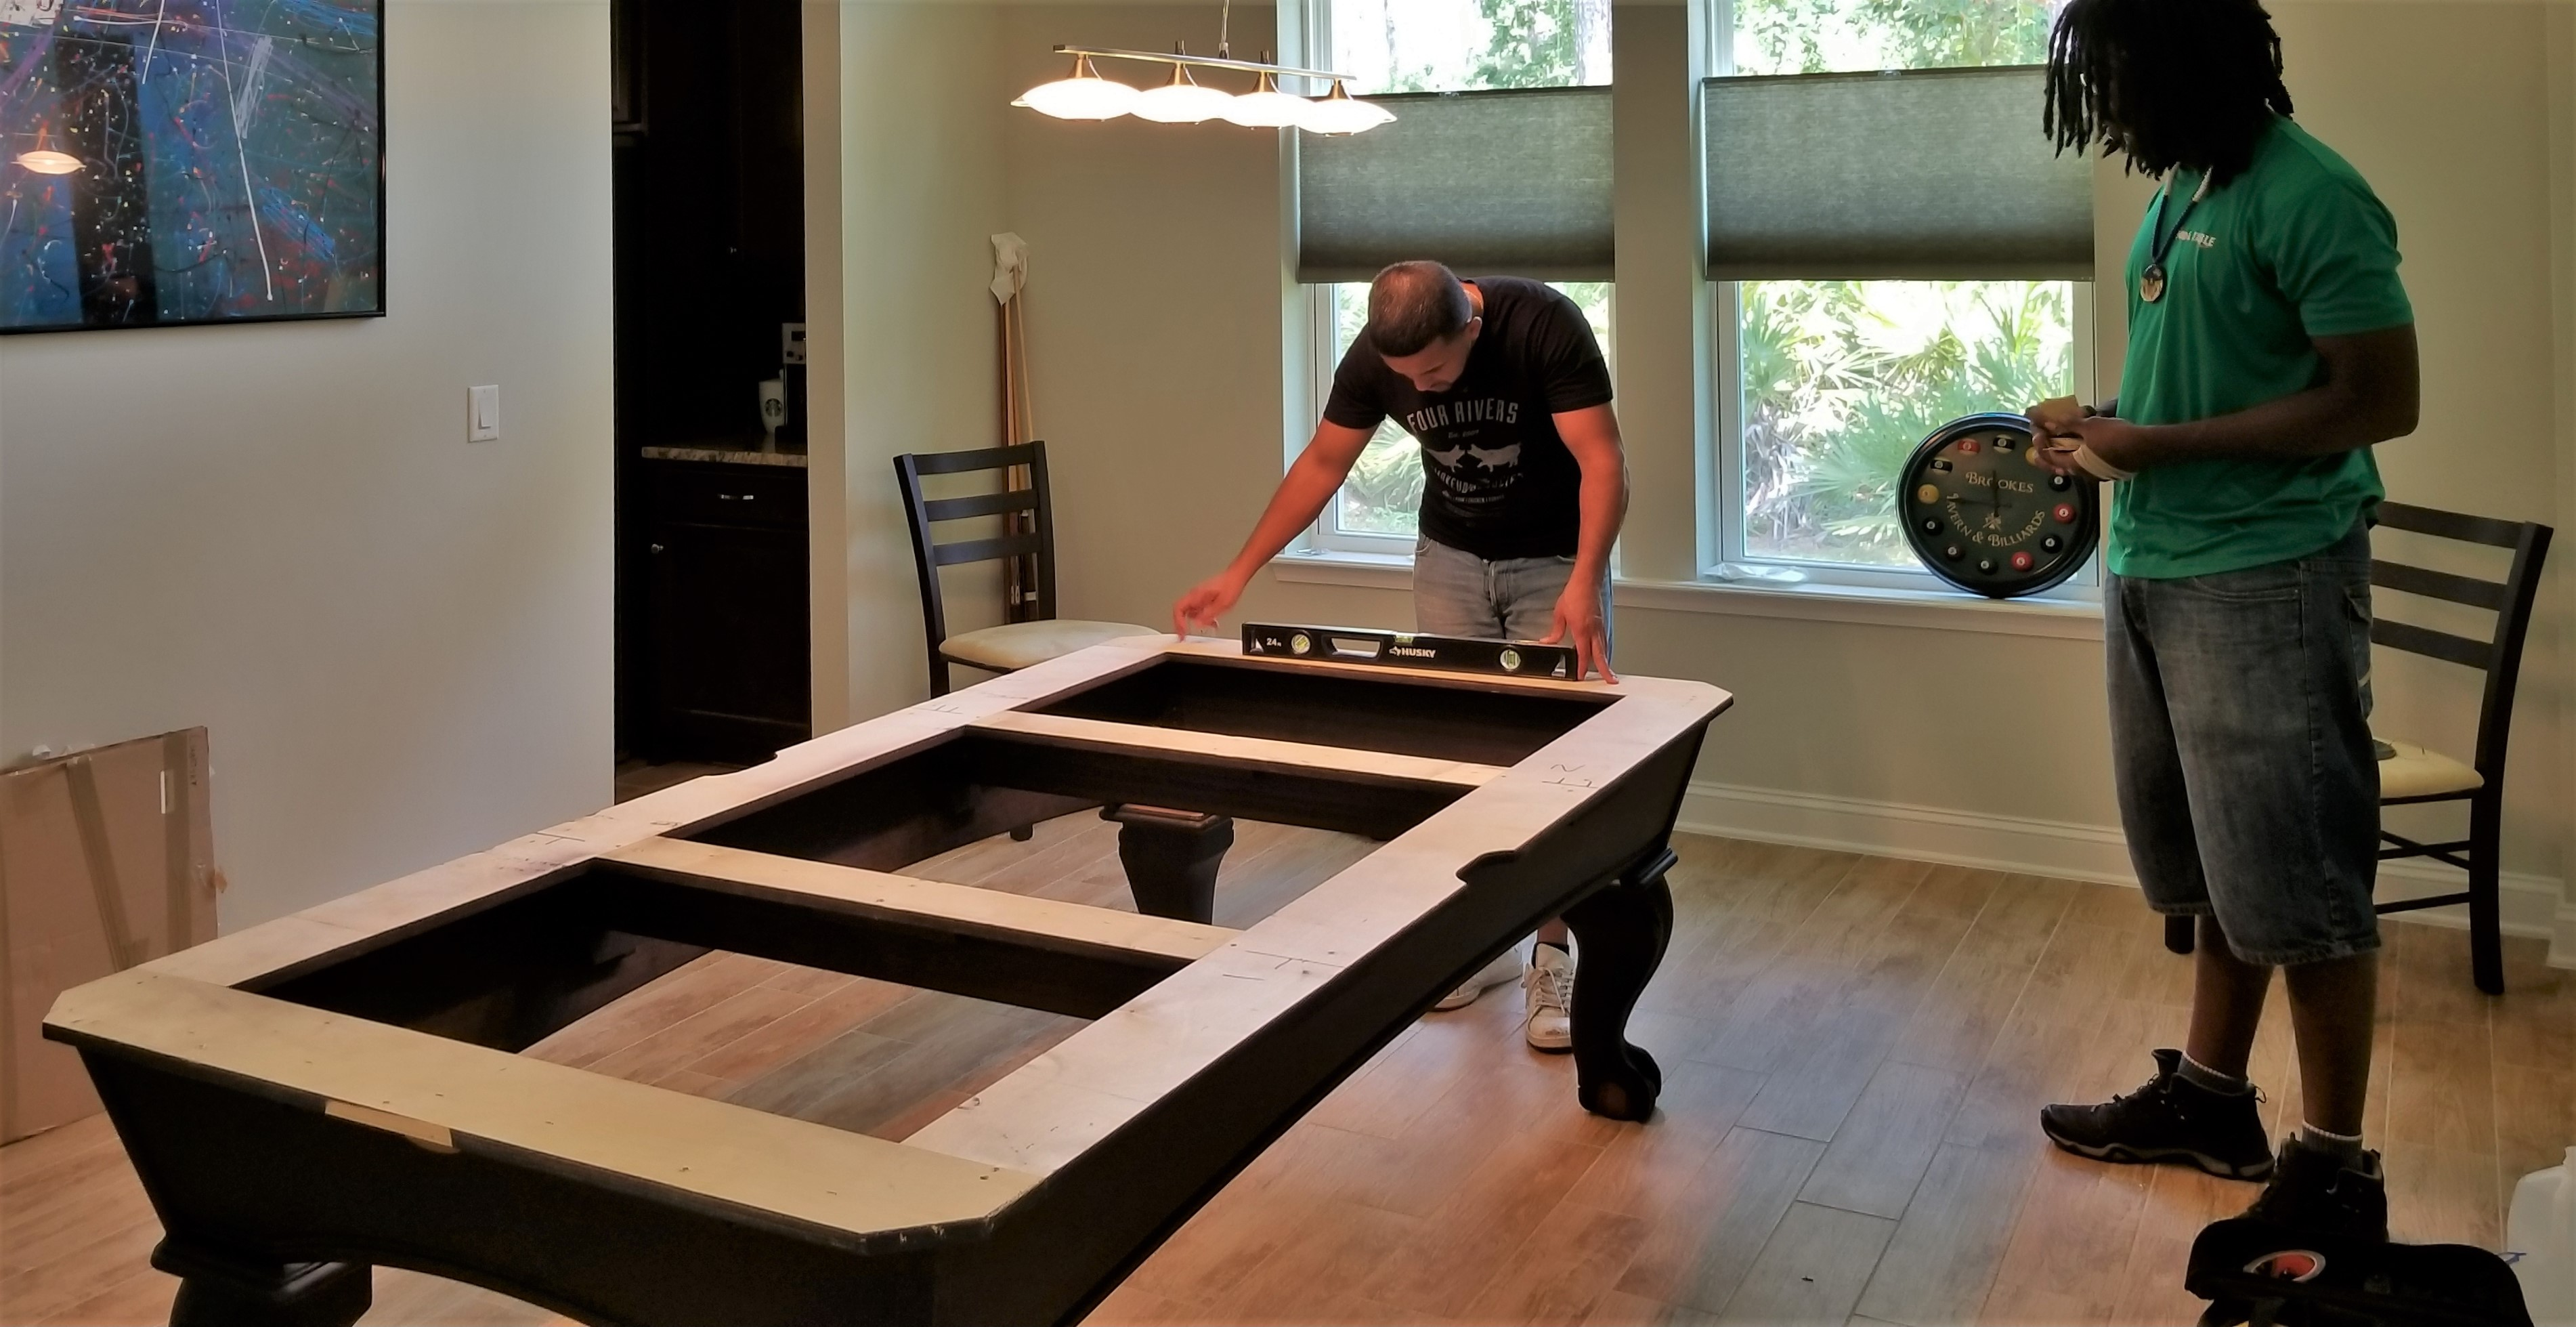 leveling the frame